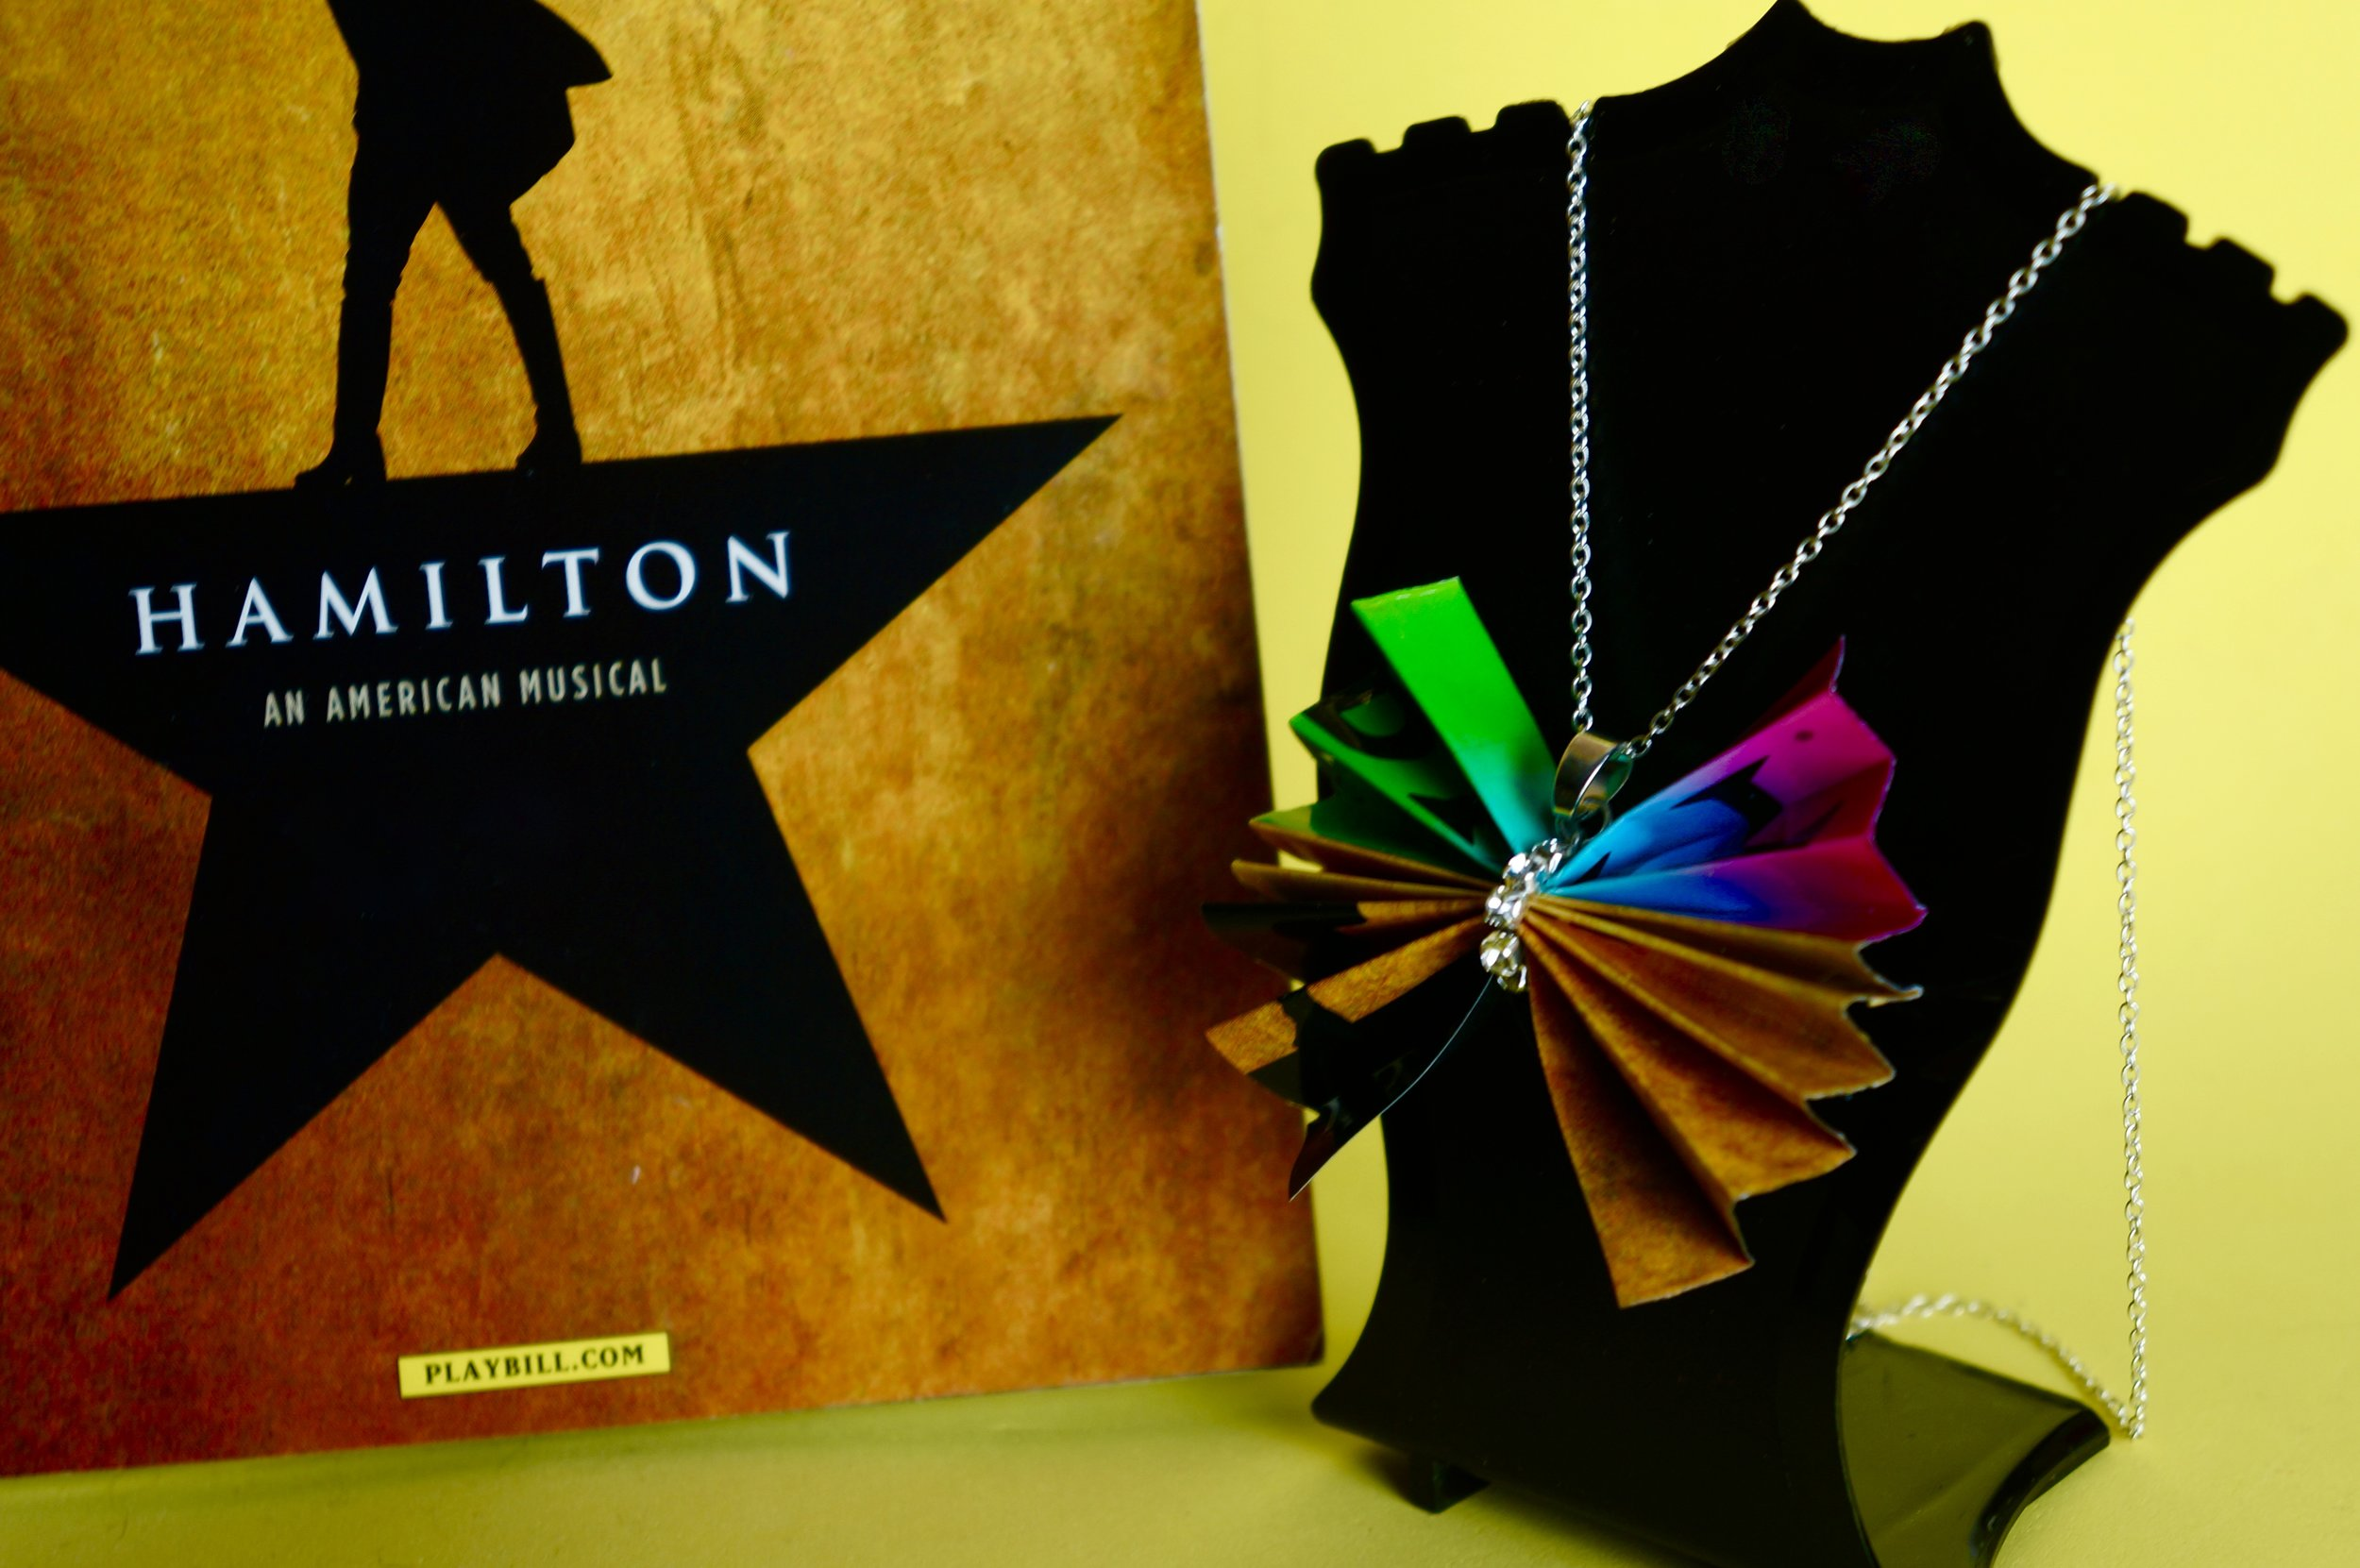 Copy of Hamilton Playbill Bows Of Broadway